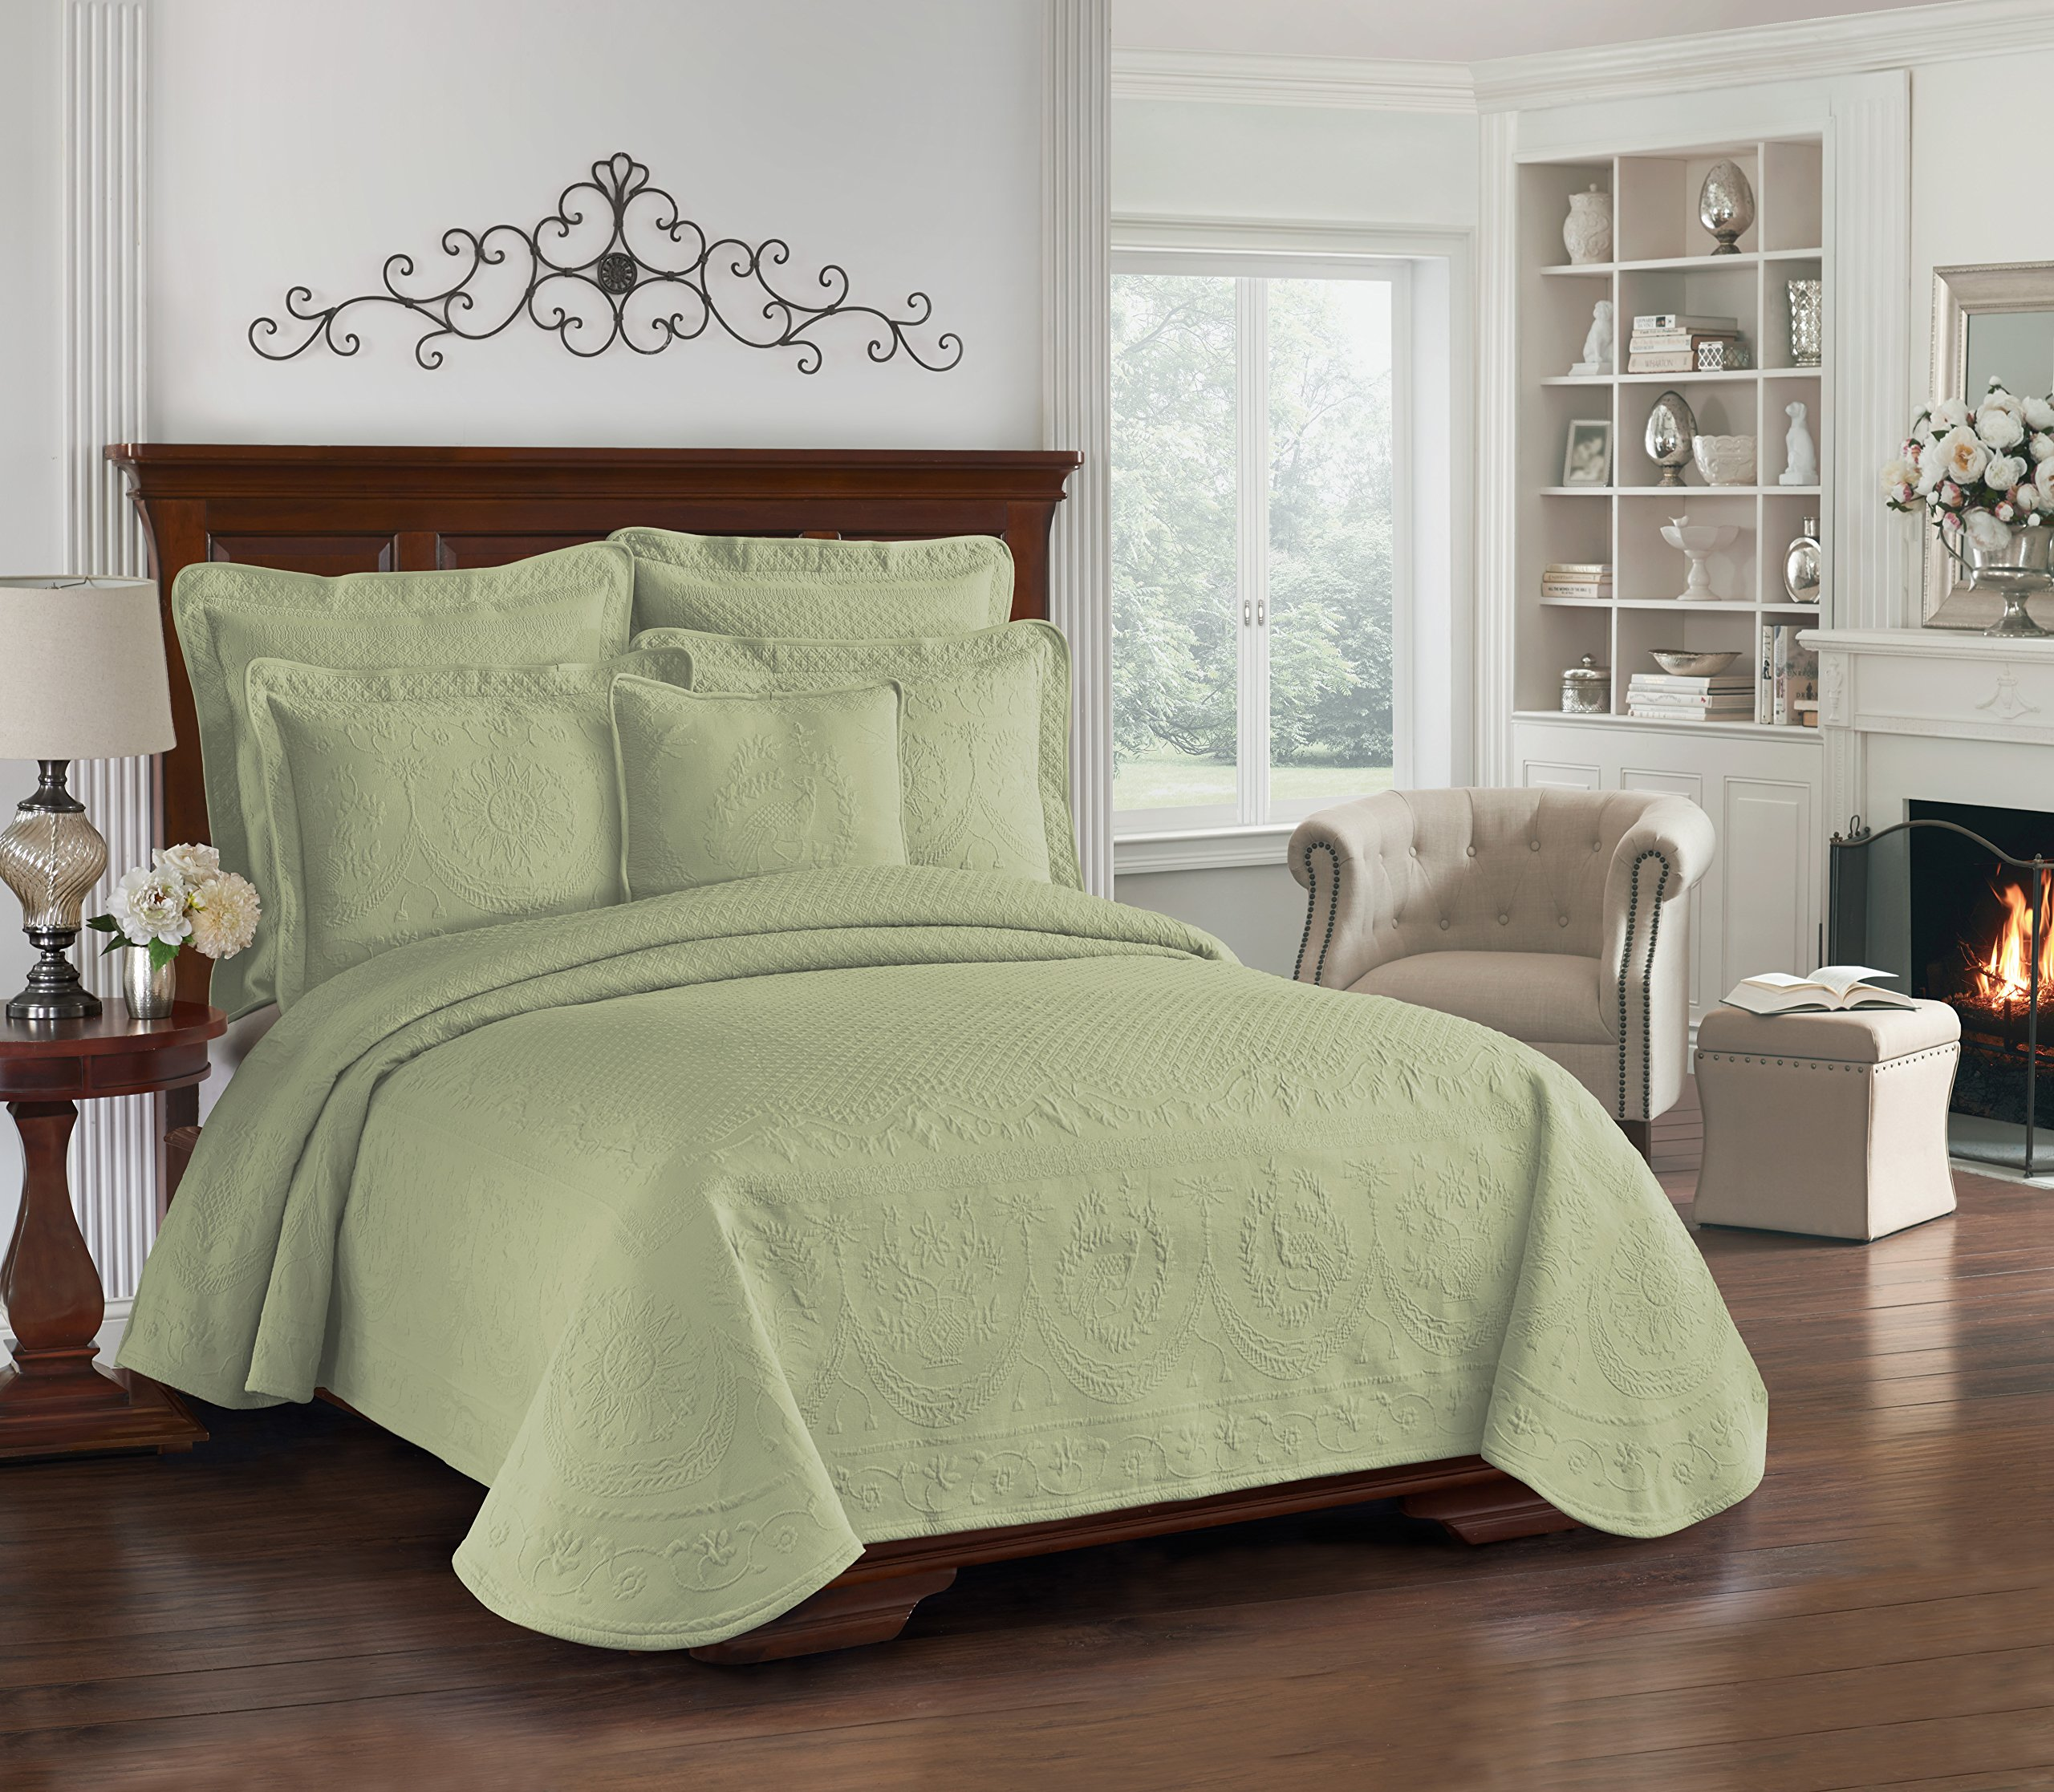 Historic Charleston 13991BEDDKNGSAG King Charles Matelasse 108-Inch by 96-Inch King Coverlet, Sage